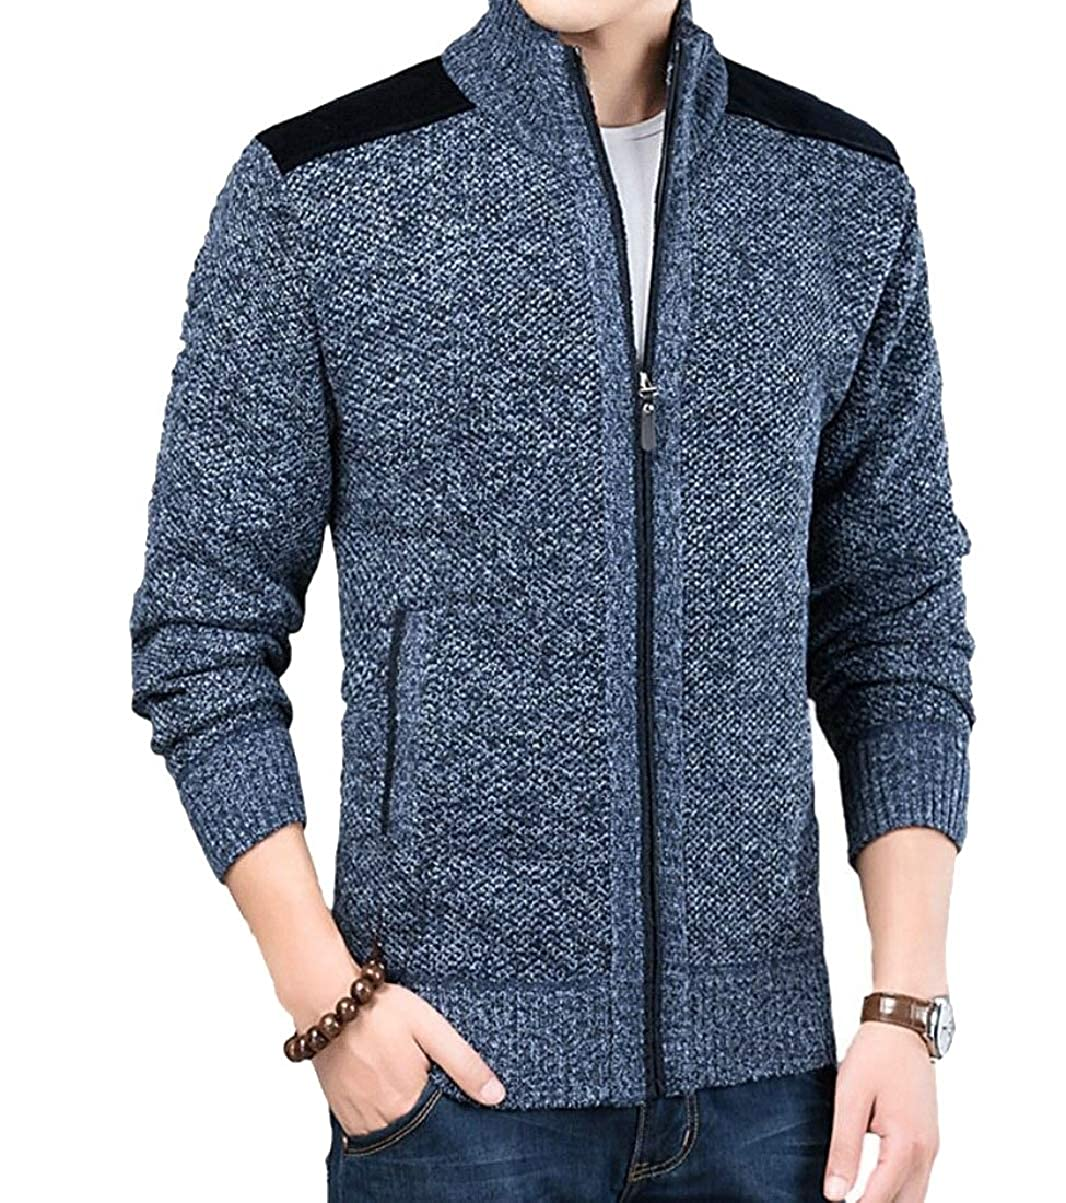 YIhujiuben Mens Thicken Knitted Zipper Long Sleeve Stand Collar Cardigan Sweaters